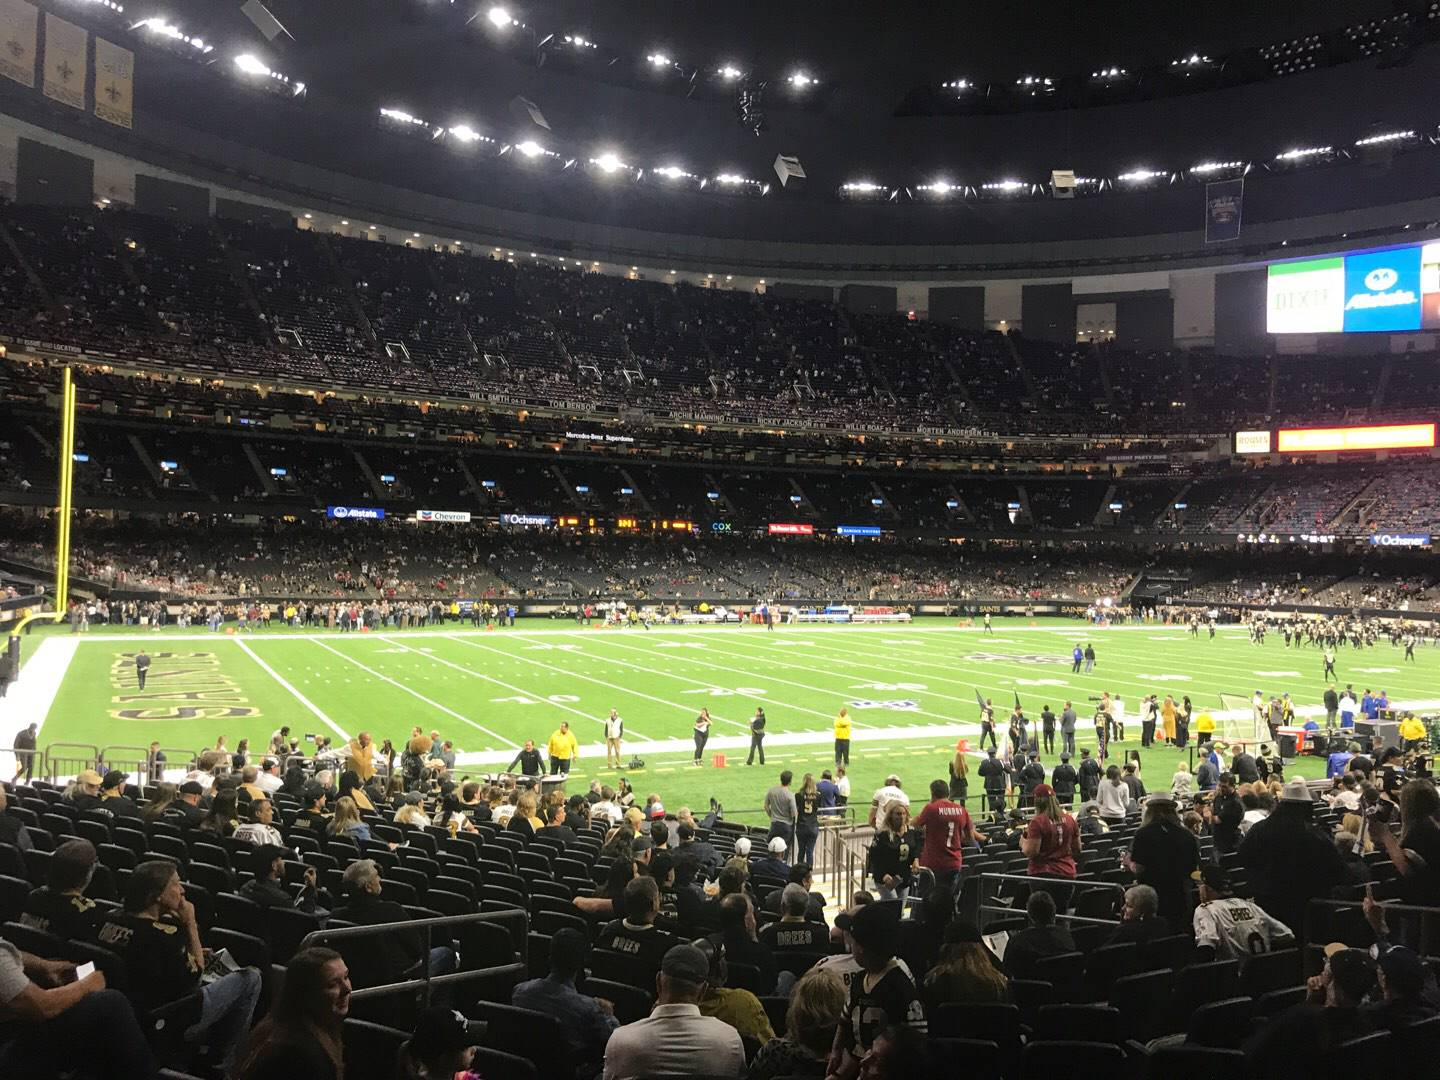 Mercedes-Benz Superdome Section 147 Row 23 Seat 15